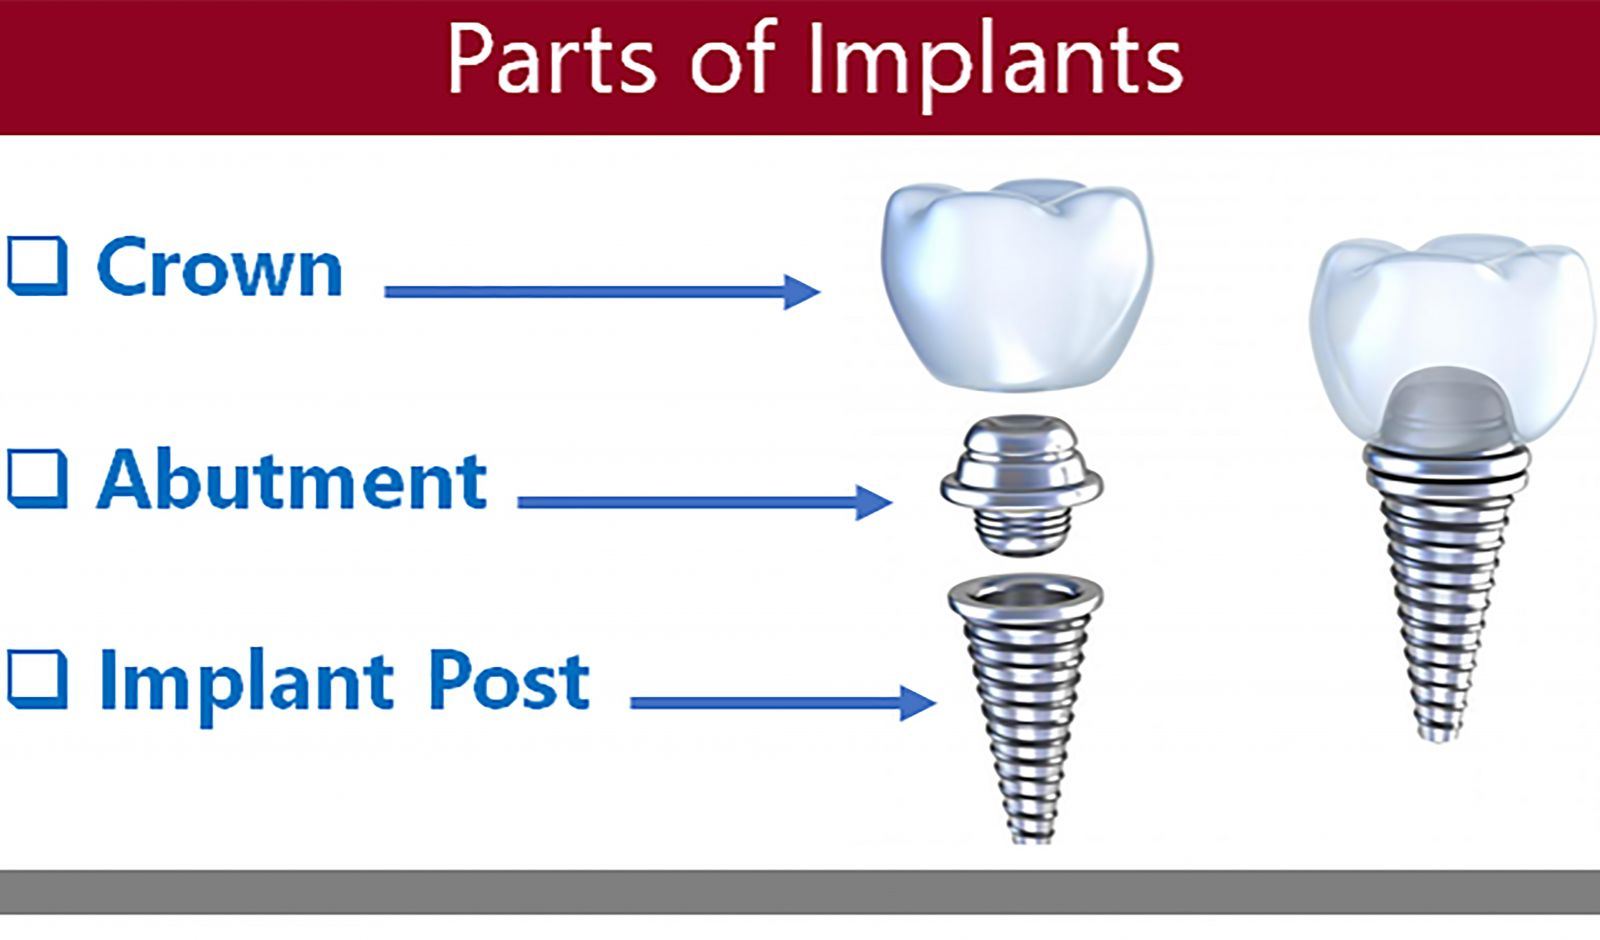 parts of implants